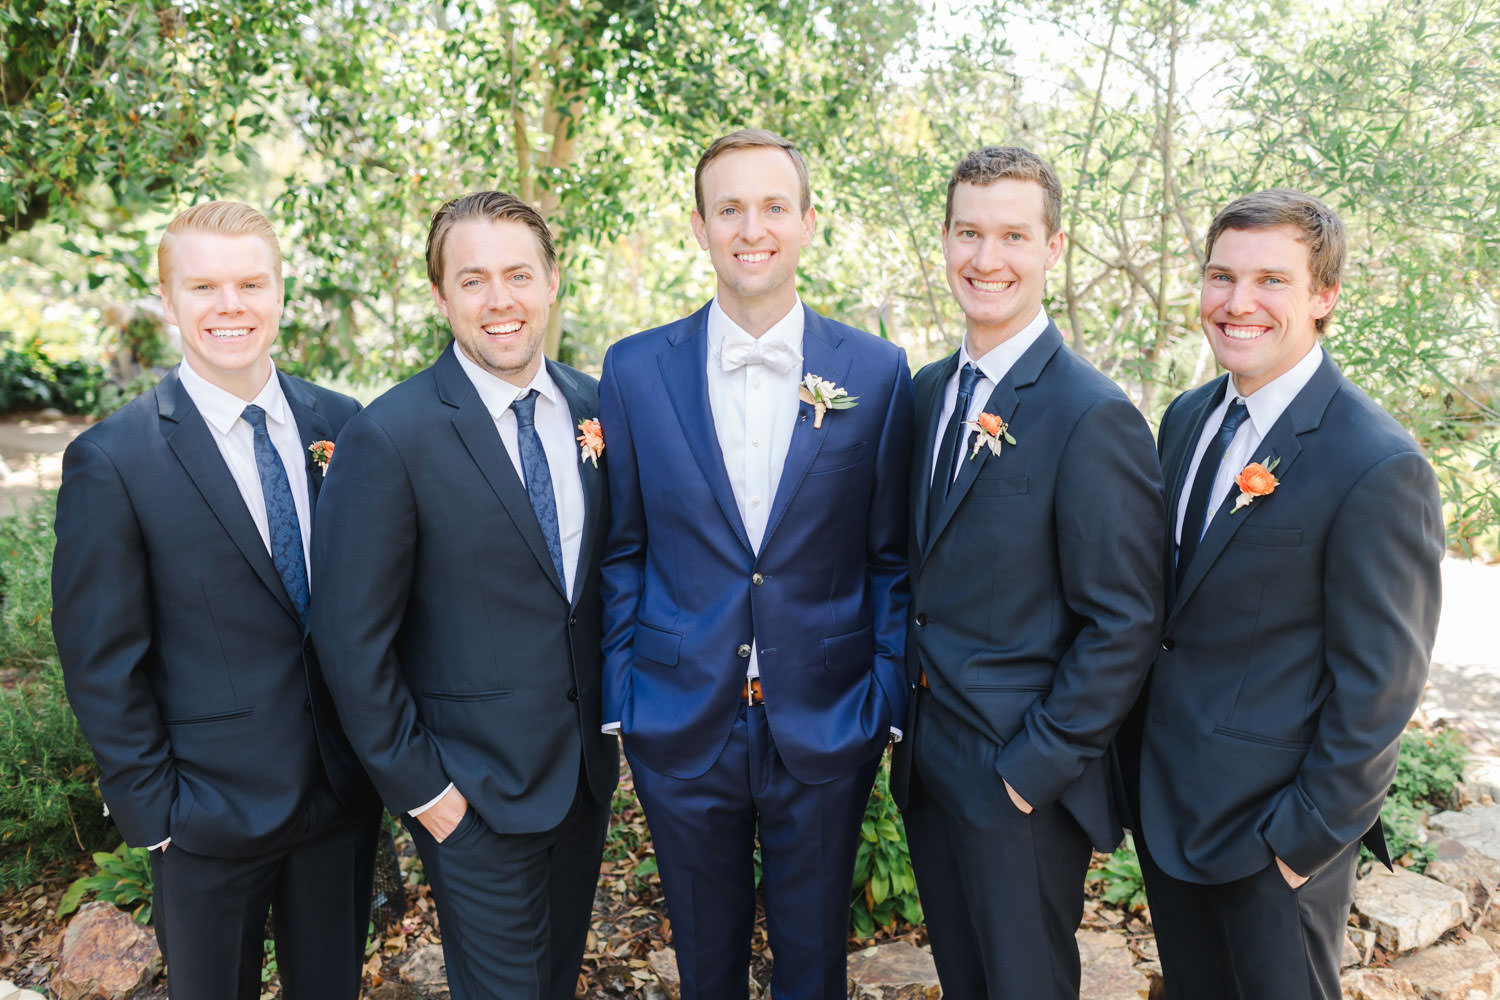 Groom in navy with groomsmen in black suits for a San Diego Botanic Garden wedding with blue and pink colors, Cavin Elizabeth Photography